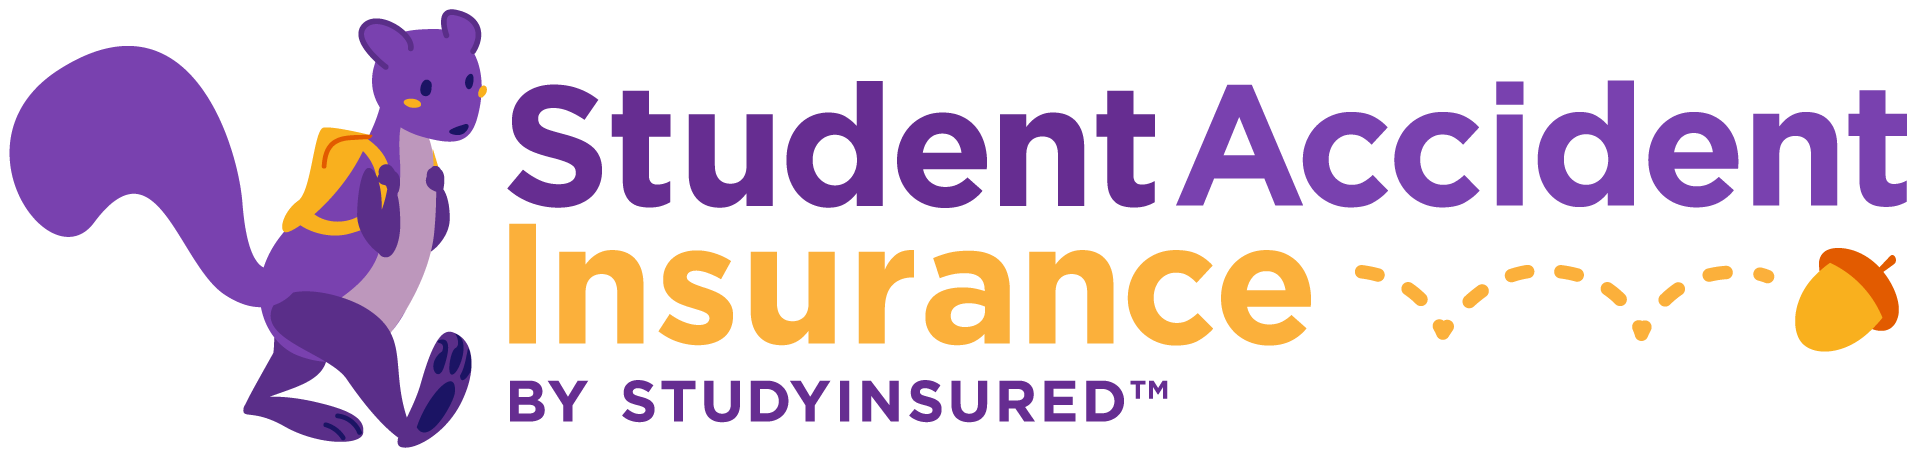 Student Accident Insurance by StudyInsured